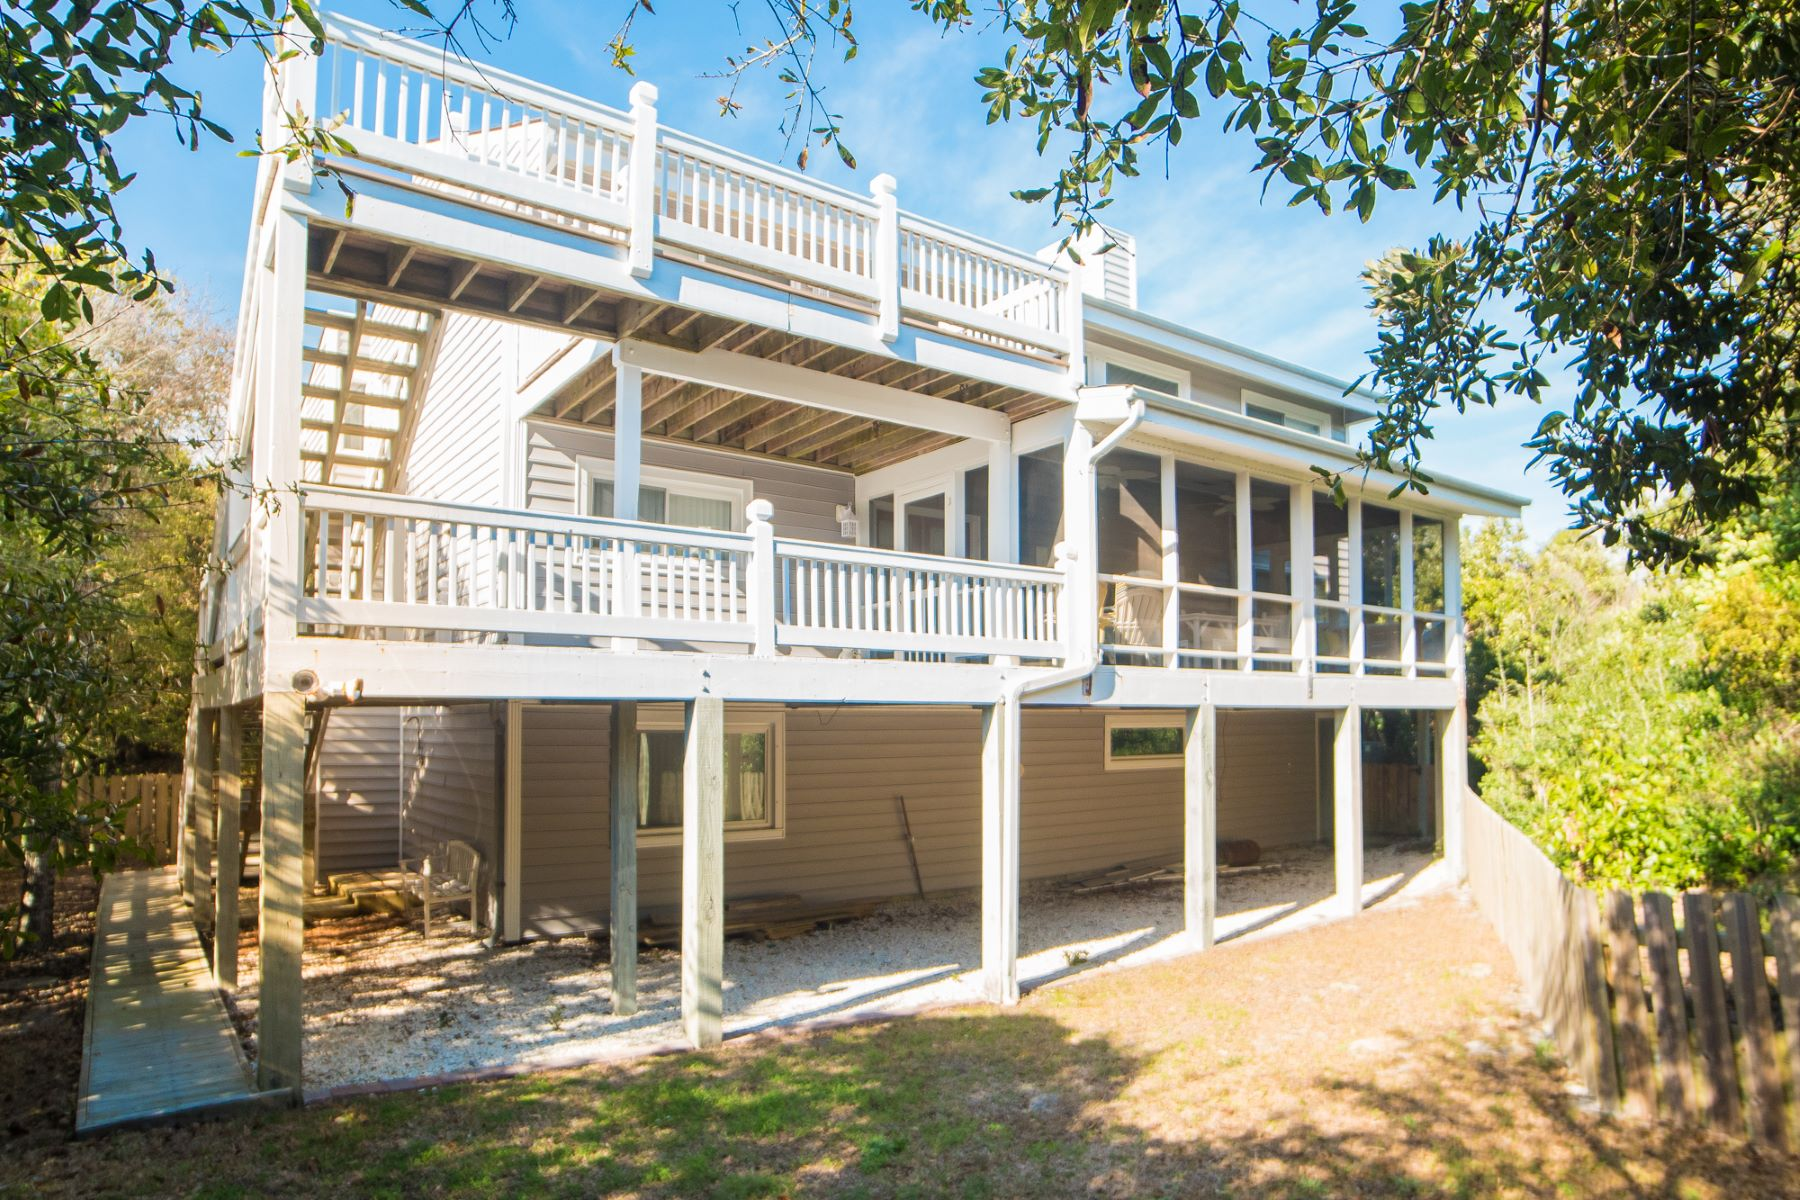 Einfamilienhaus für Verkauf beim Spacious Island Home with Ocean Views and Privacy 126 Channel Bend Surf City, North Carolina, 28445 Vereinigte Staaten